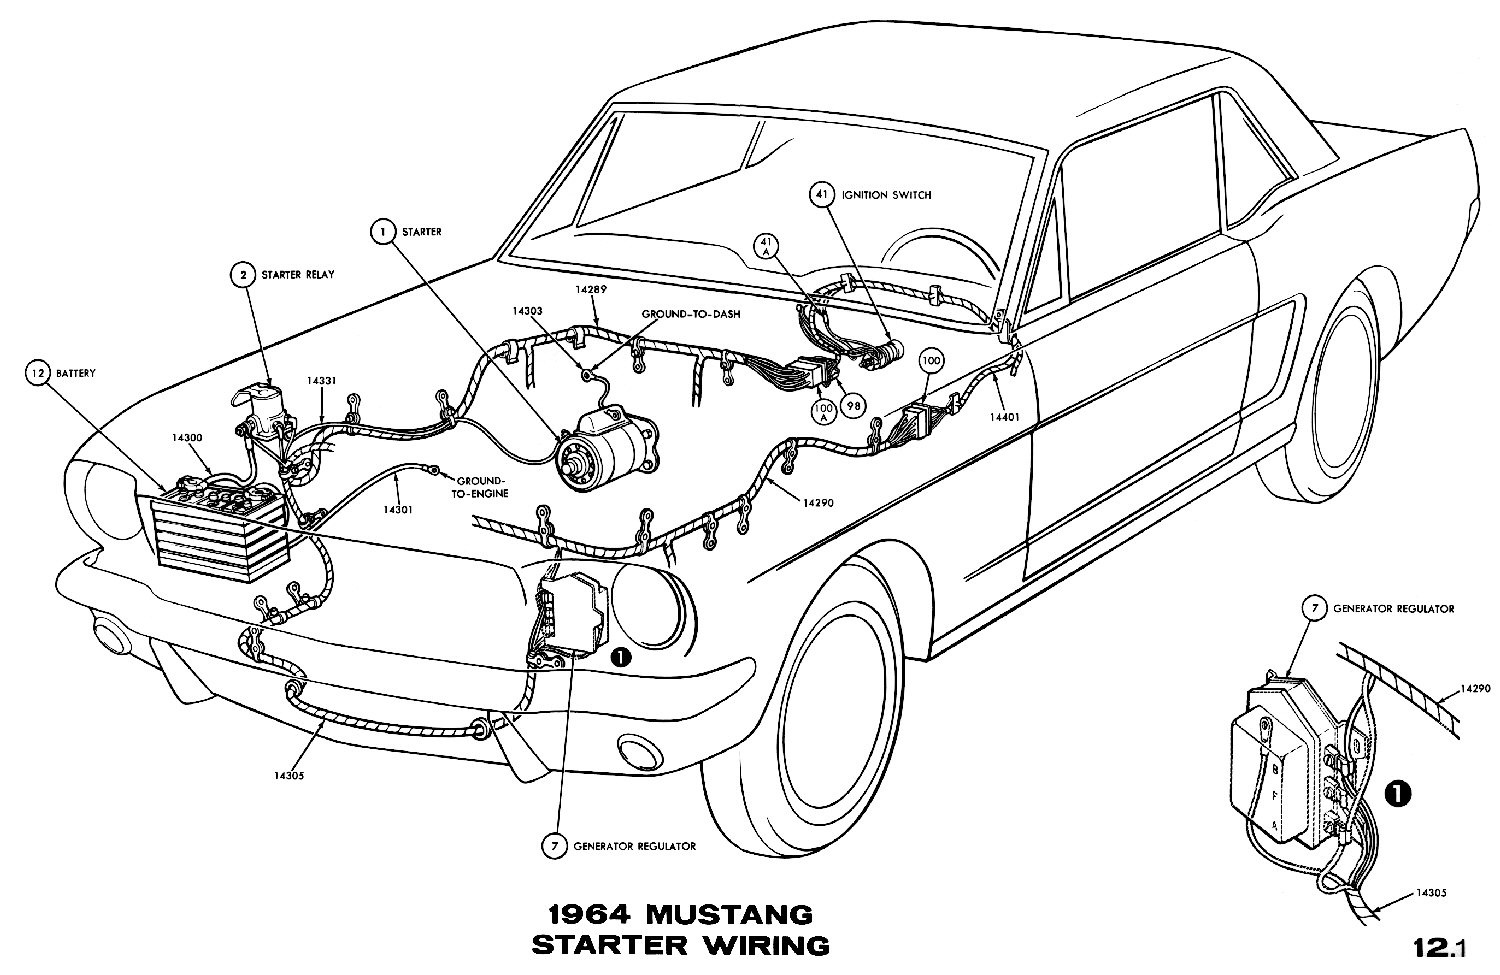 Alternator Wiring Diagram For 95 Mustang Gt Library Typical Gm Electric Fuel Pump Schematic 1964 Diagrams Average Joe Restoration Rh Averagejoerestoration Com Starter 94